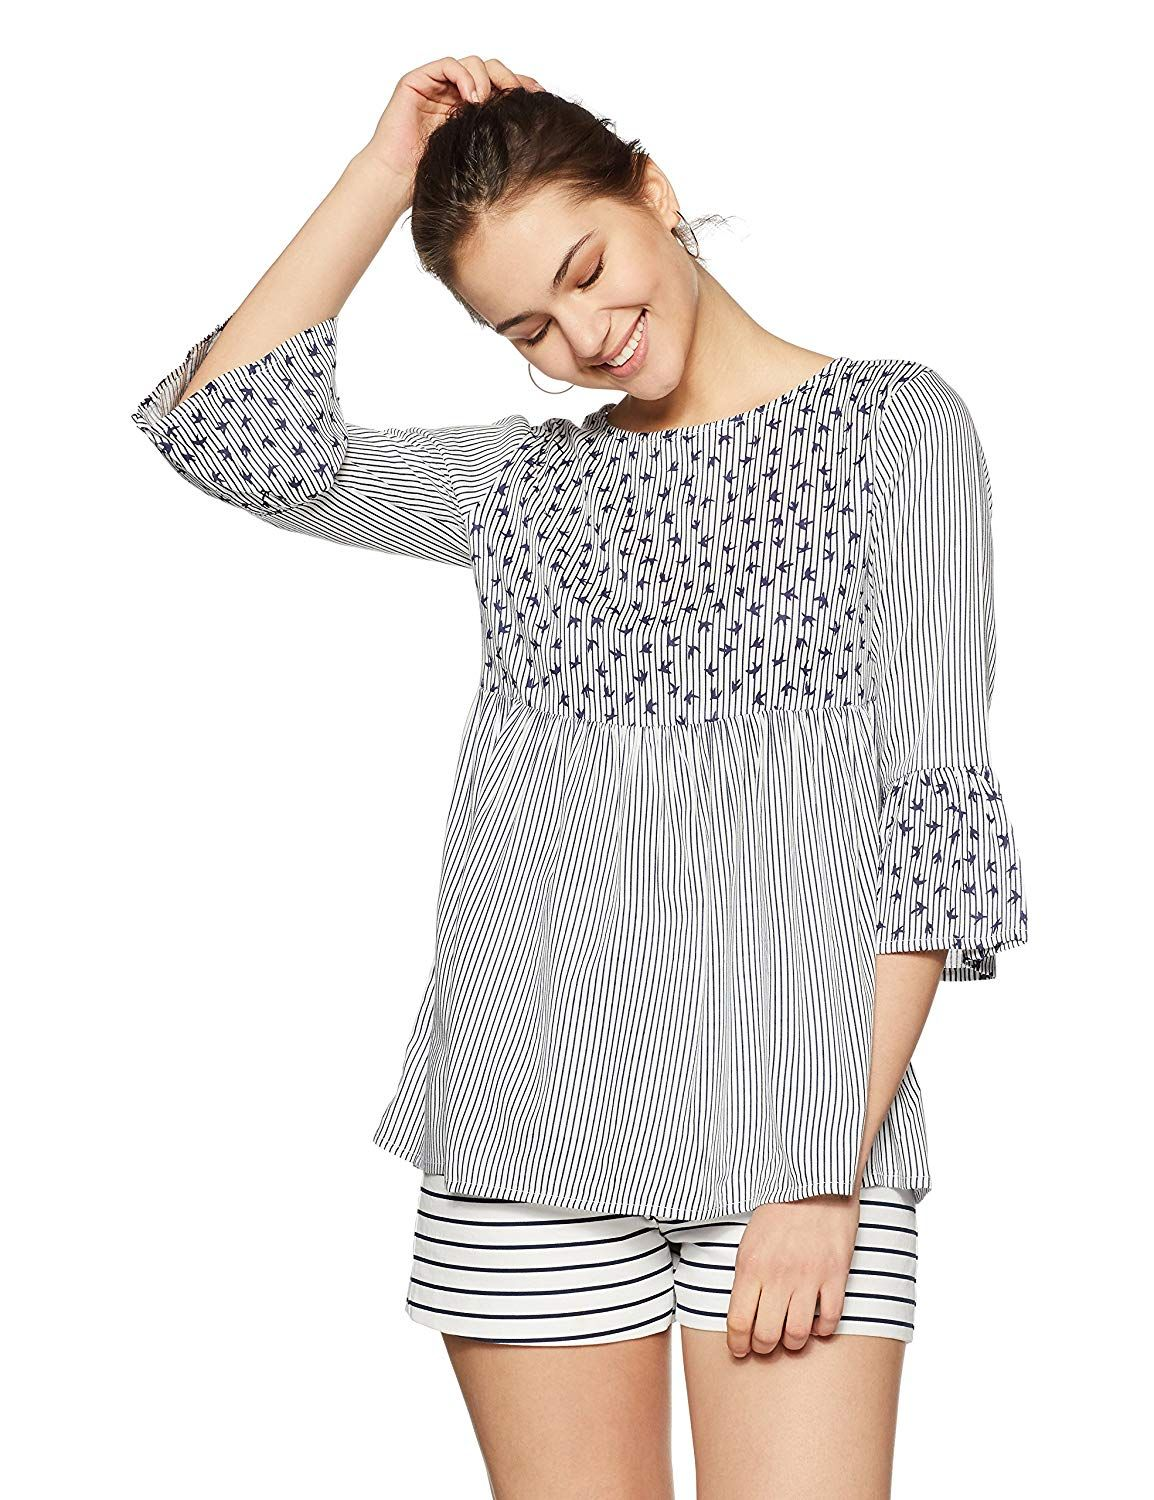 23ca584634852f Styleville.in Women s Striped Regular Fit Top  Amazon.in  Clothing    Accessories  smarttop  girlstop  girlsfashion